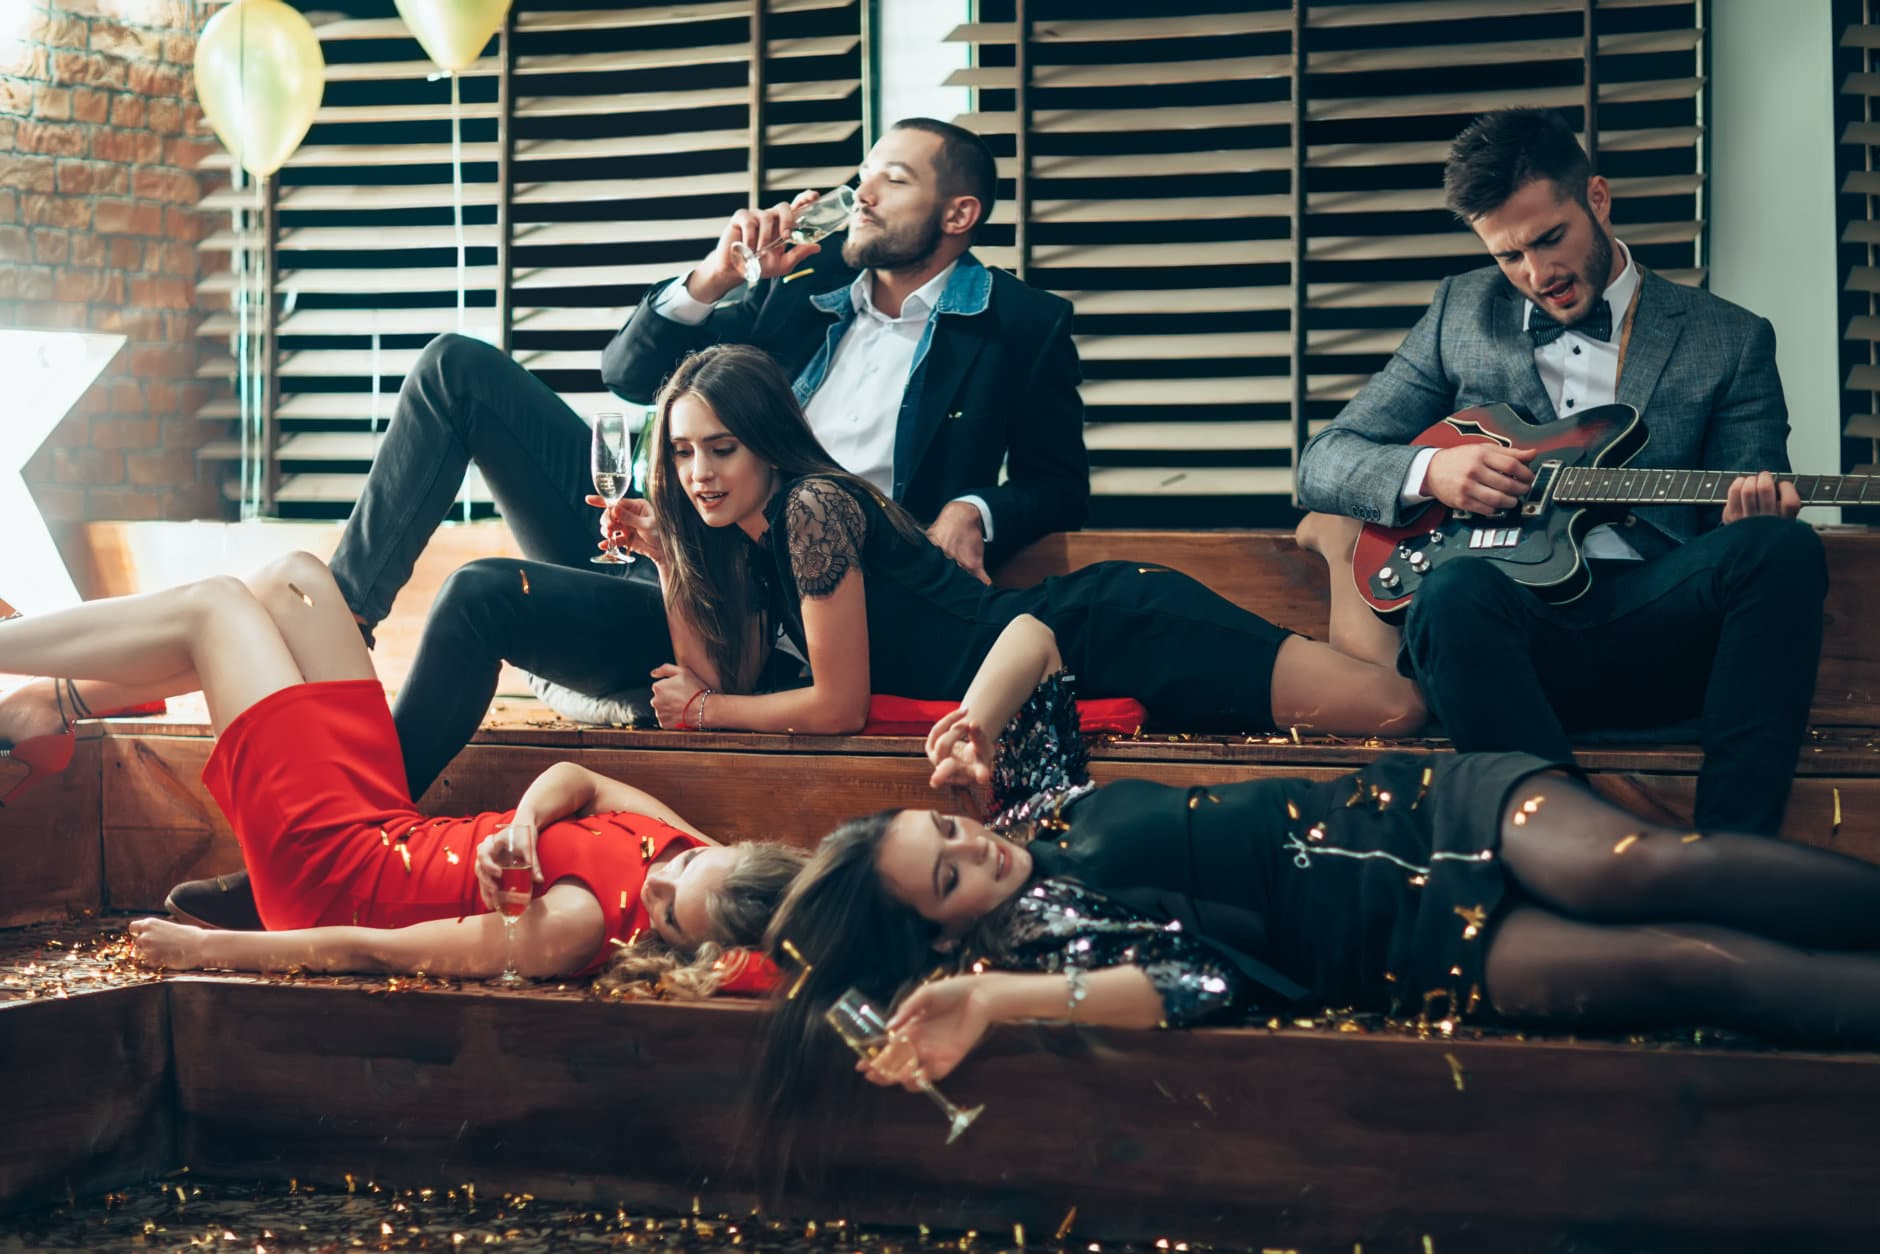 Friends enjoying party and celebrating together. New year, Birthday, Holiday Event concept